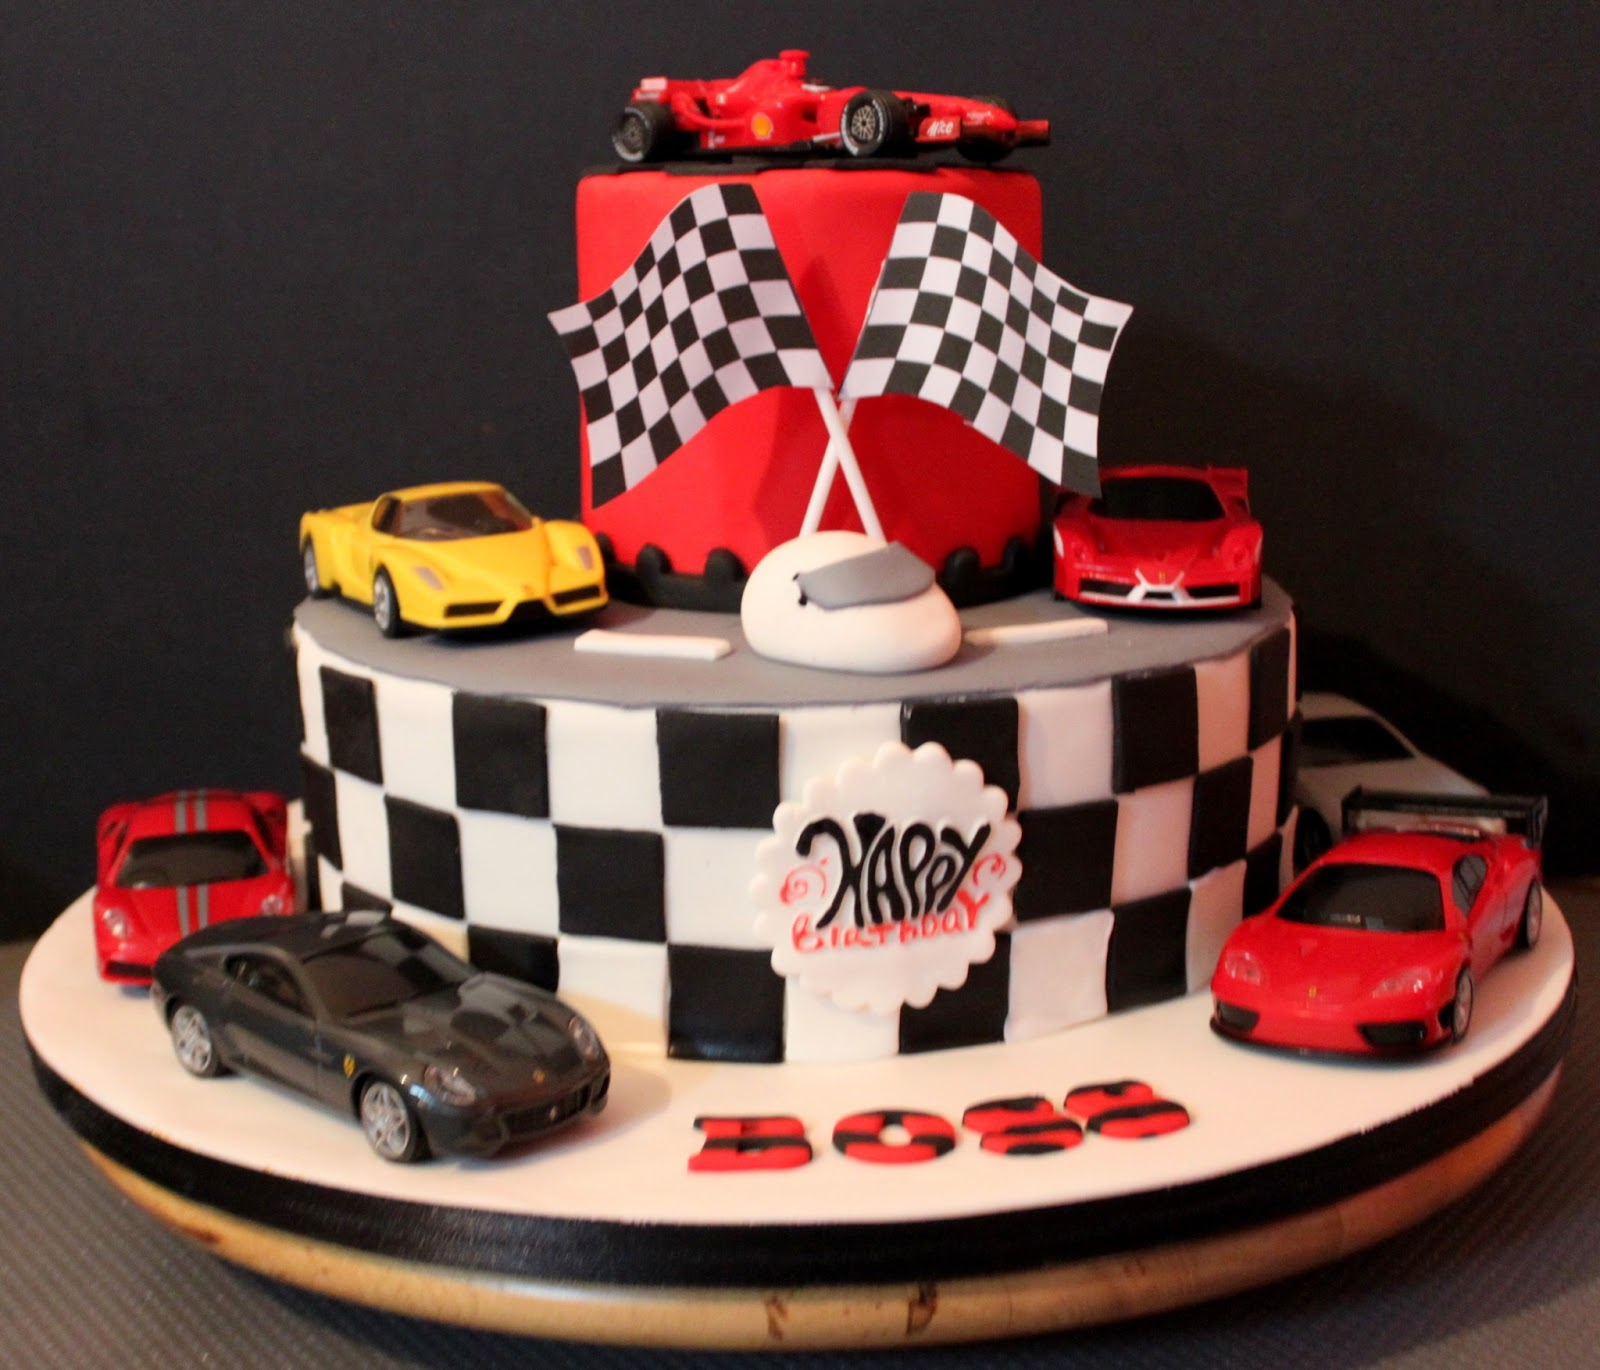 Ferrari Birthday Cake Designs